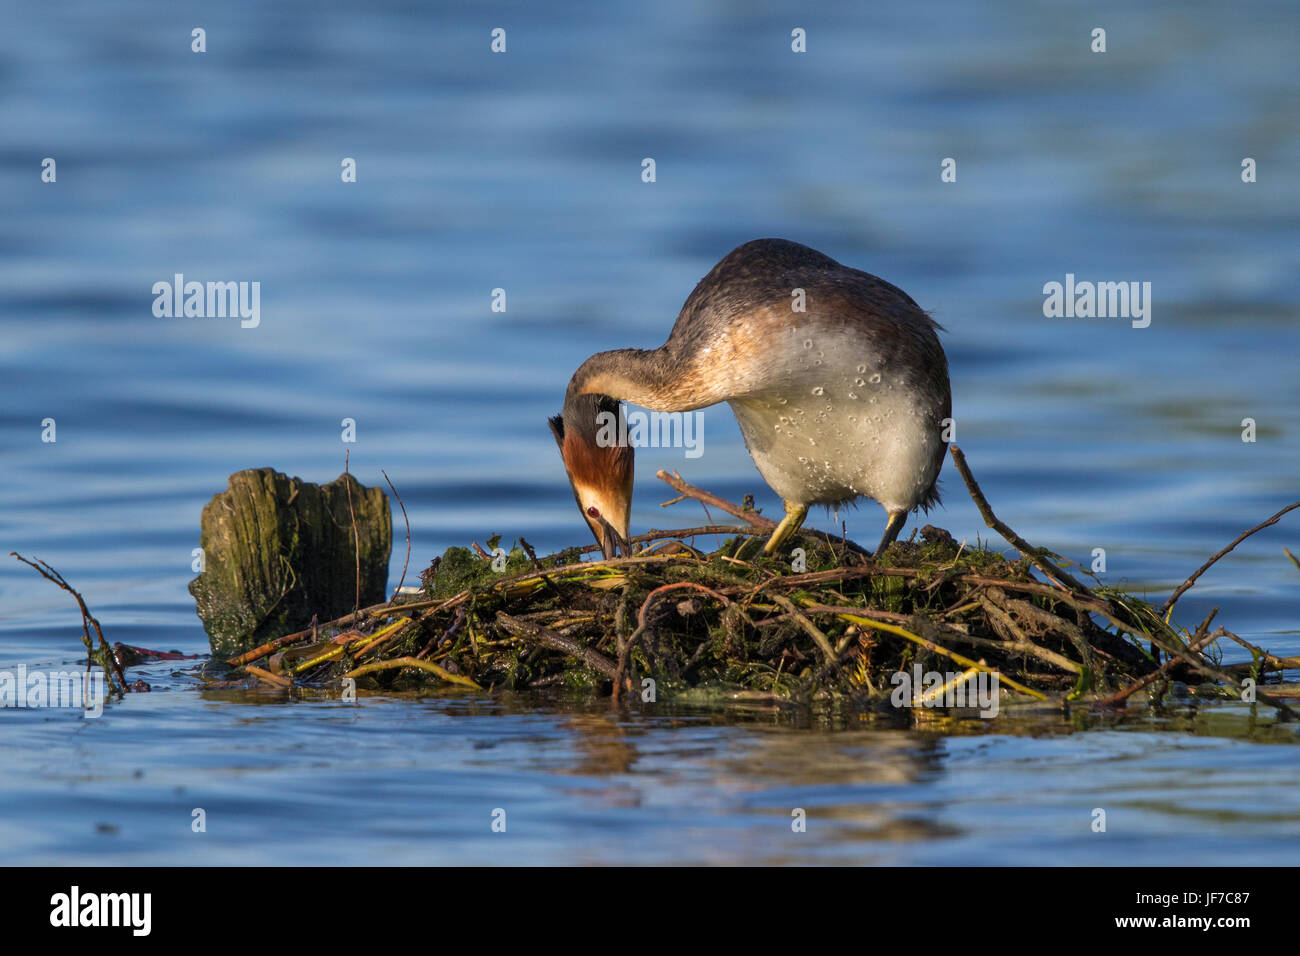 Great Crested Grebe (Podiceps cristatus) building its nest - Stock Image